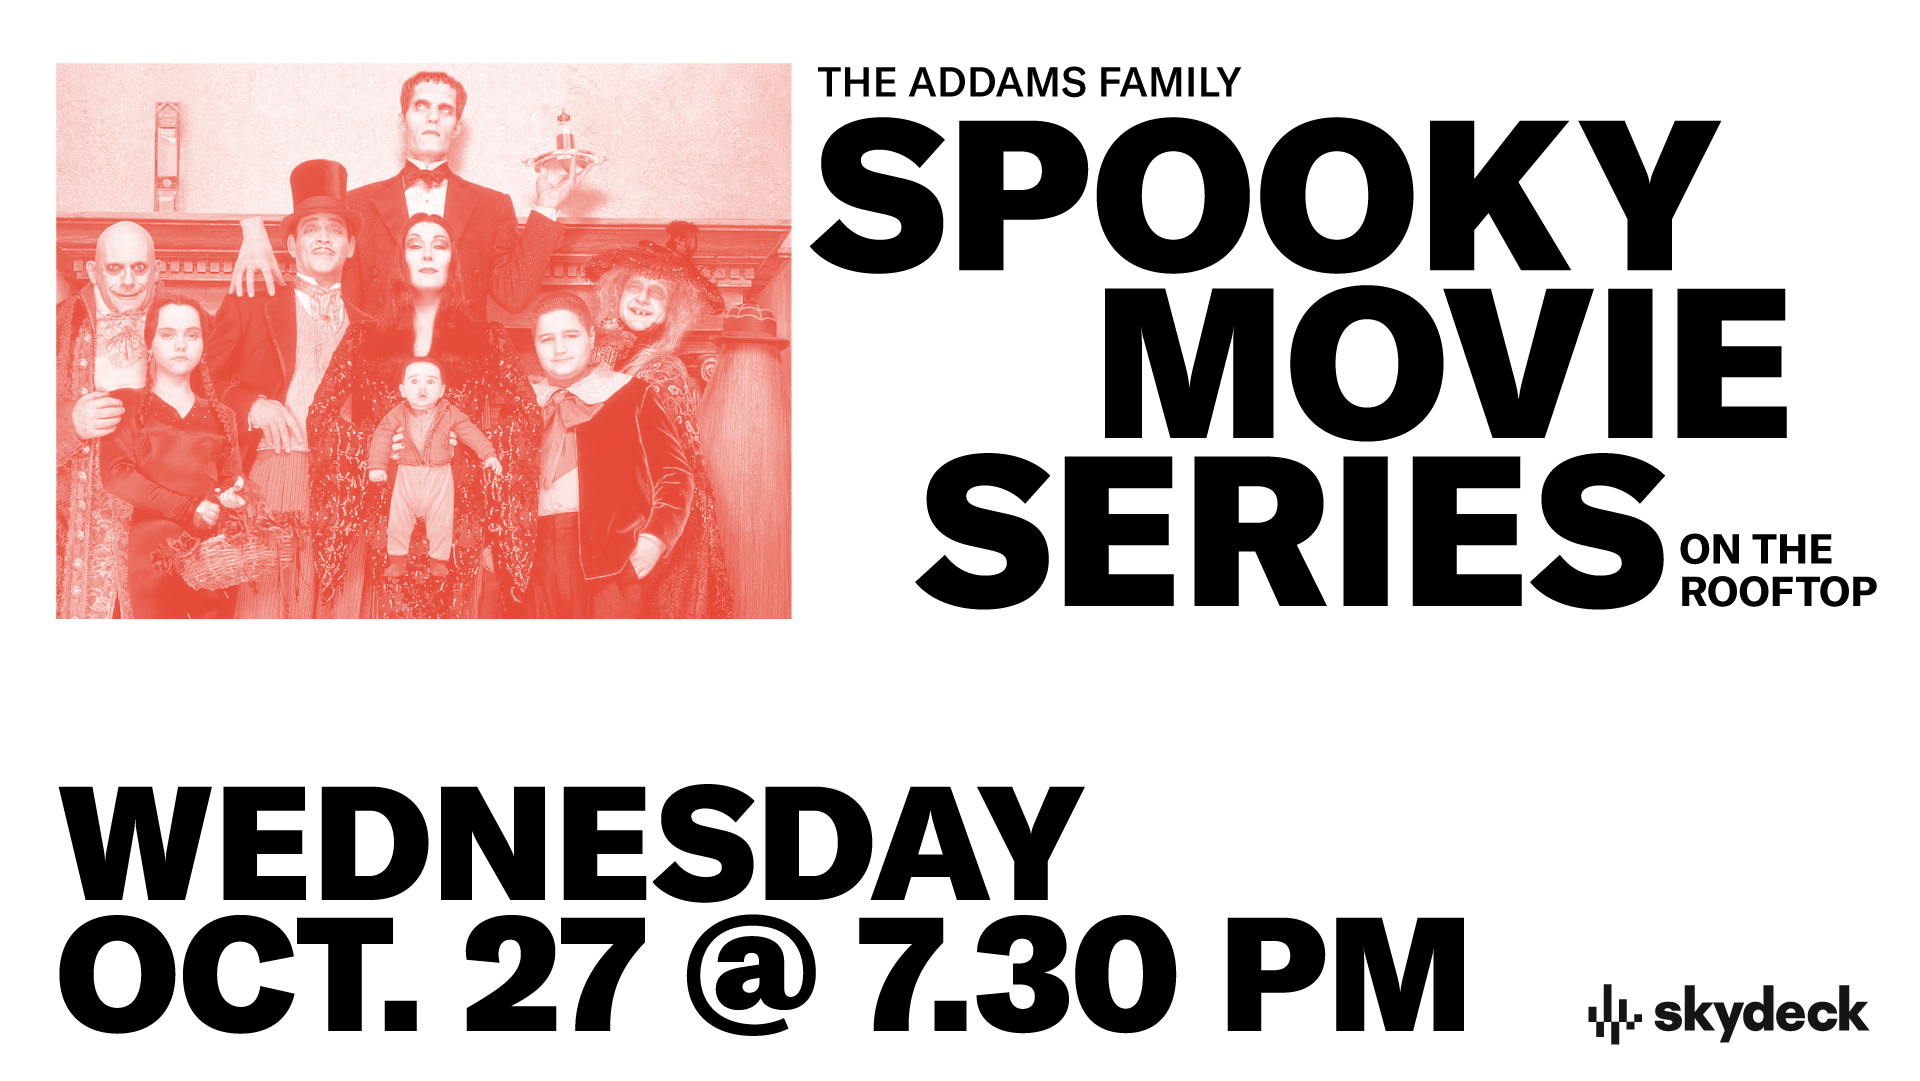 Promo image of The Addams Family on Skydeck